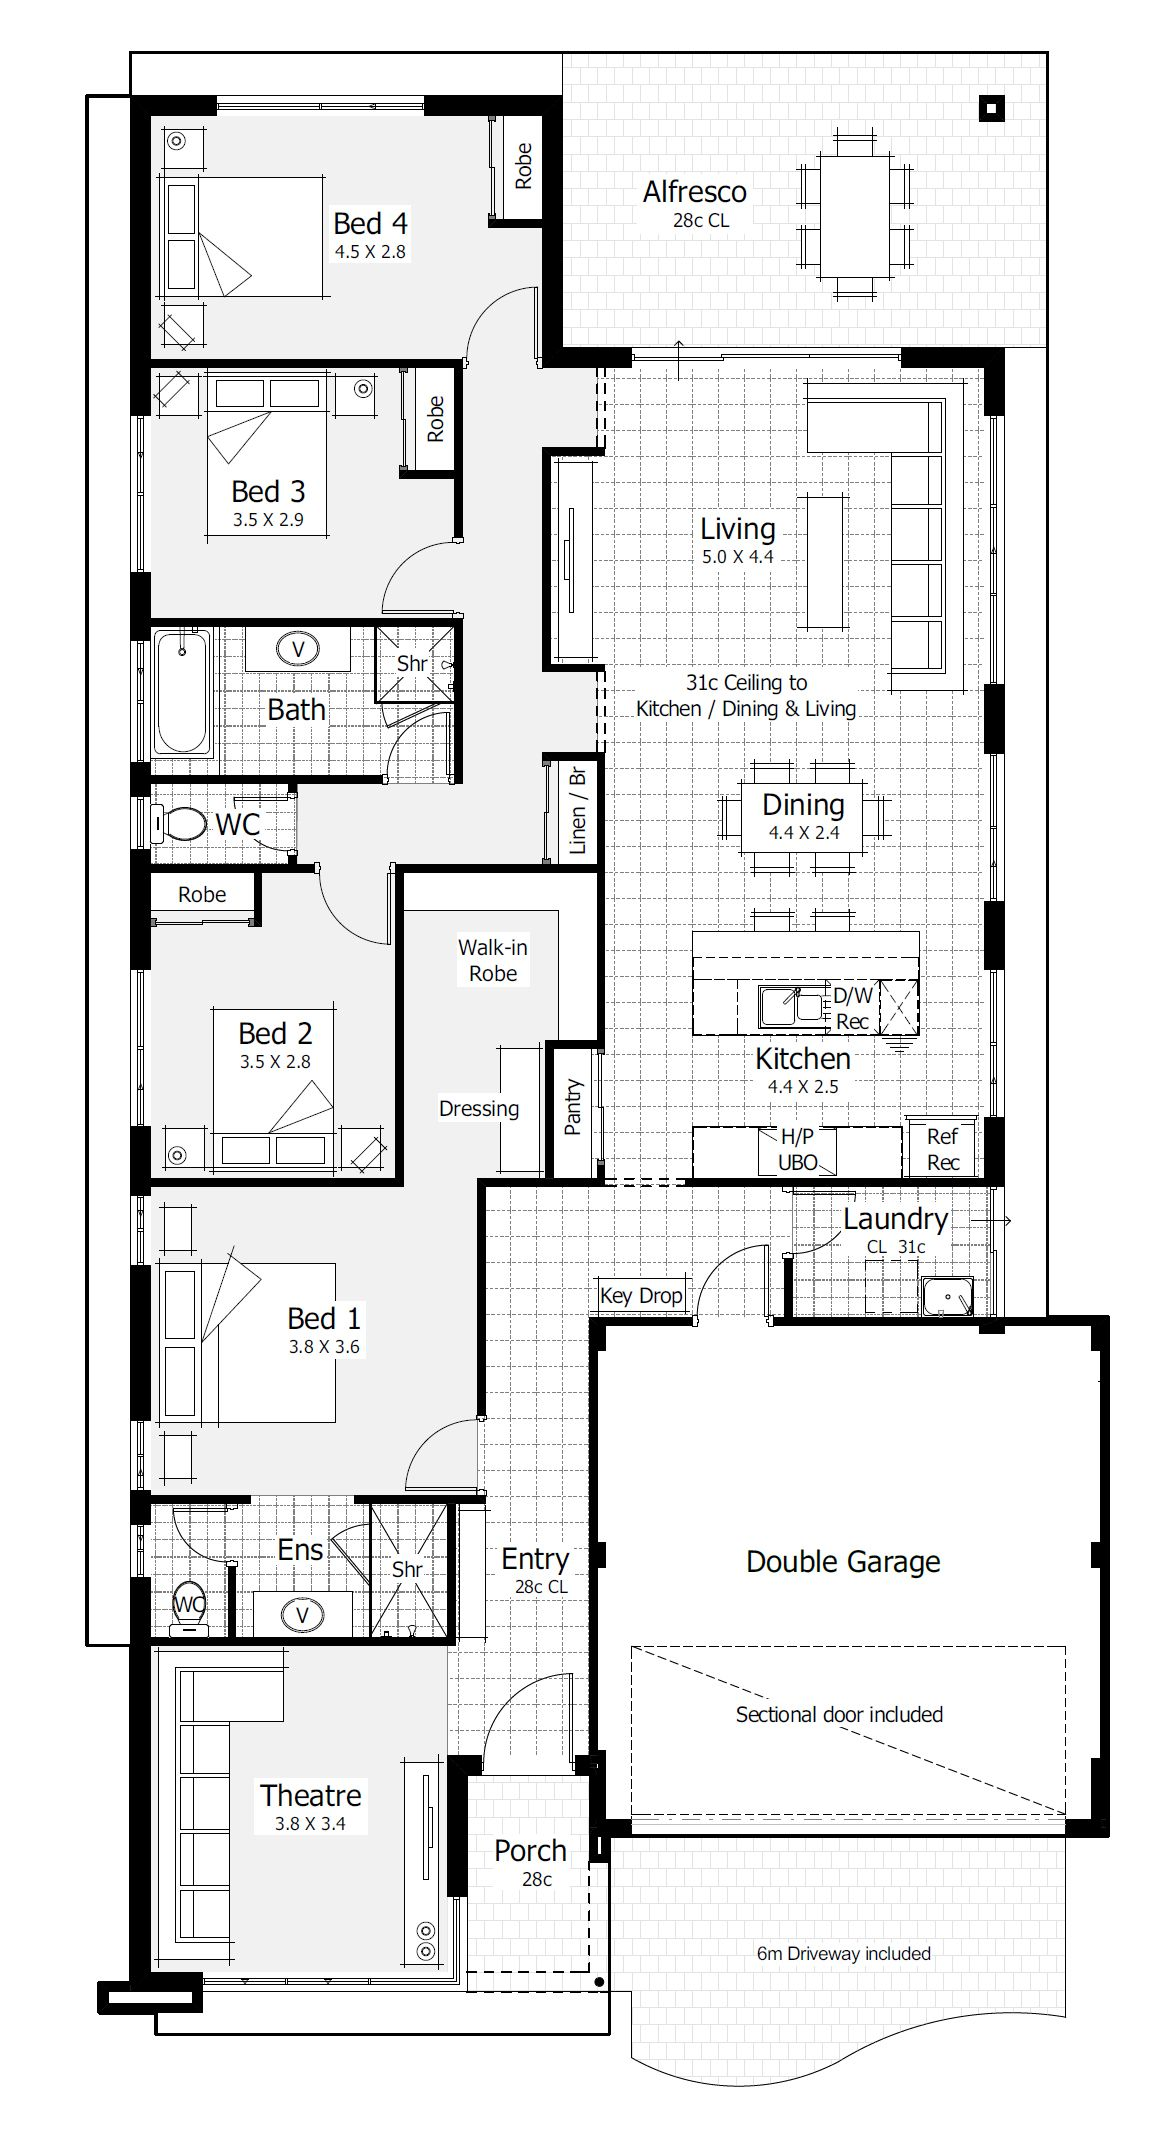 House Designs New Home Designs Perth Homebuyers Centre Sims House Plans One Storey House New House Plans